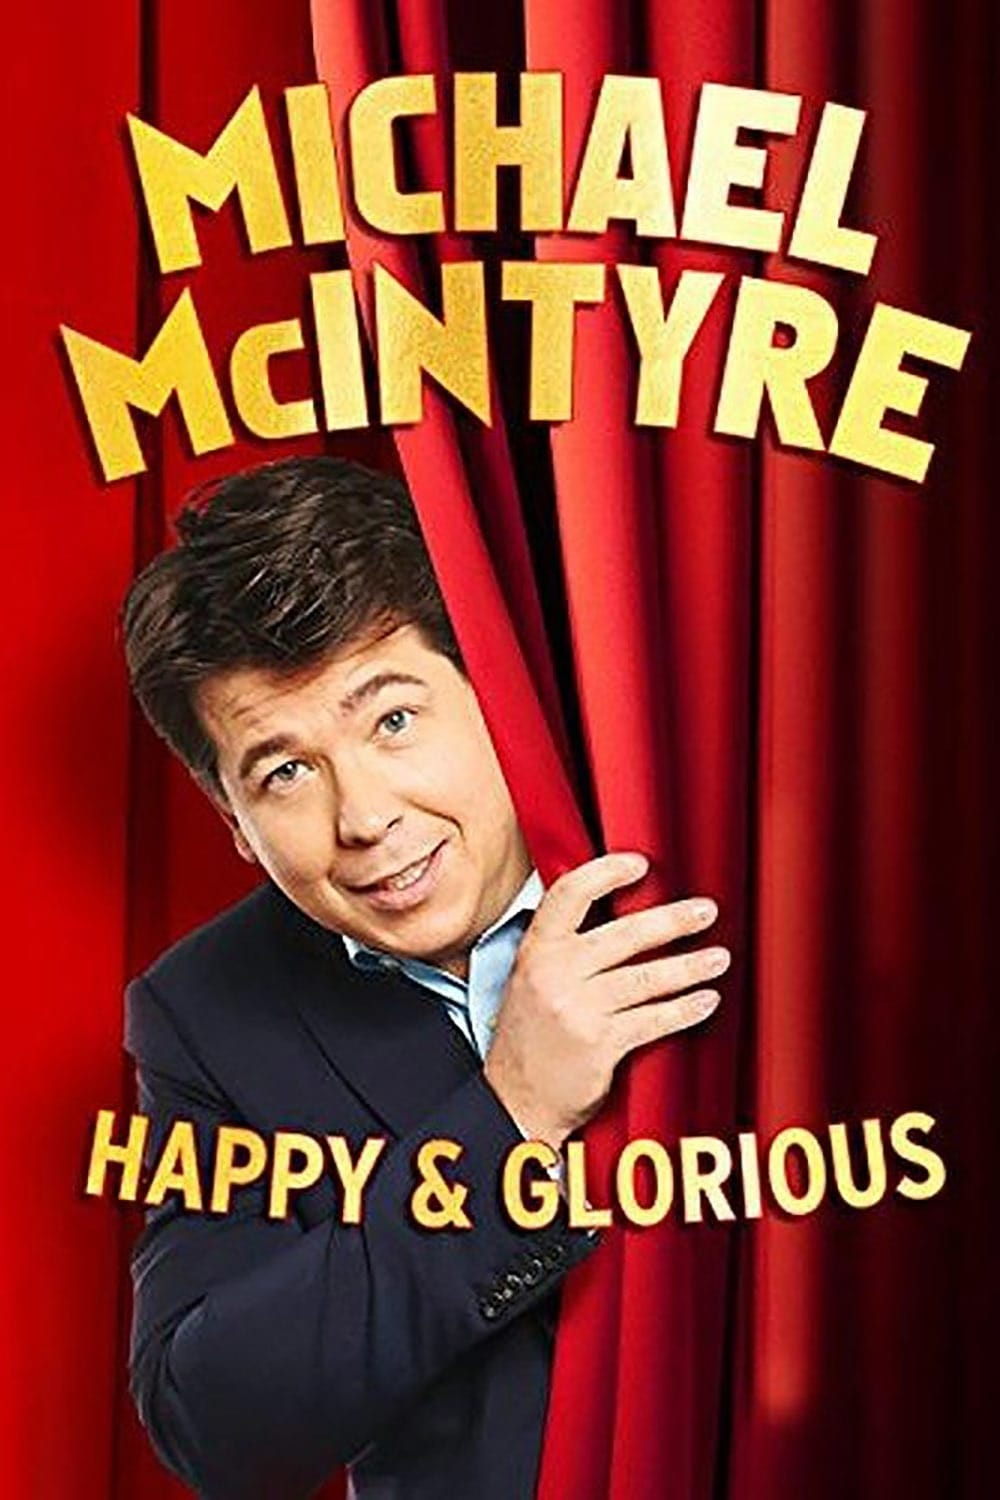 Michael McIntyre - Happy & Glorious (2015)